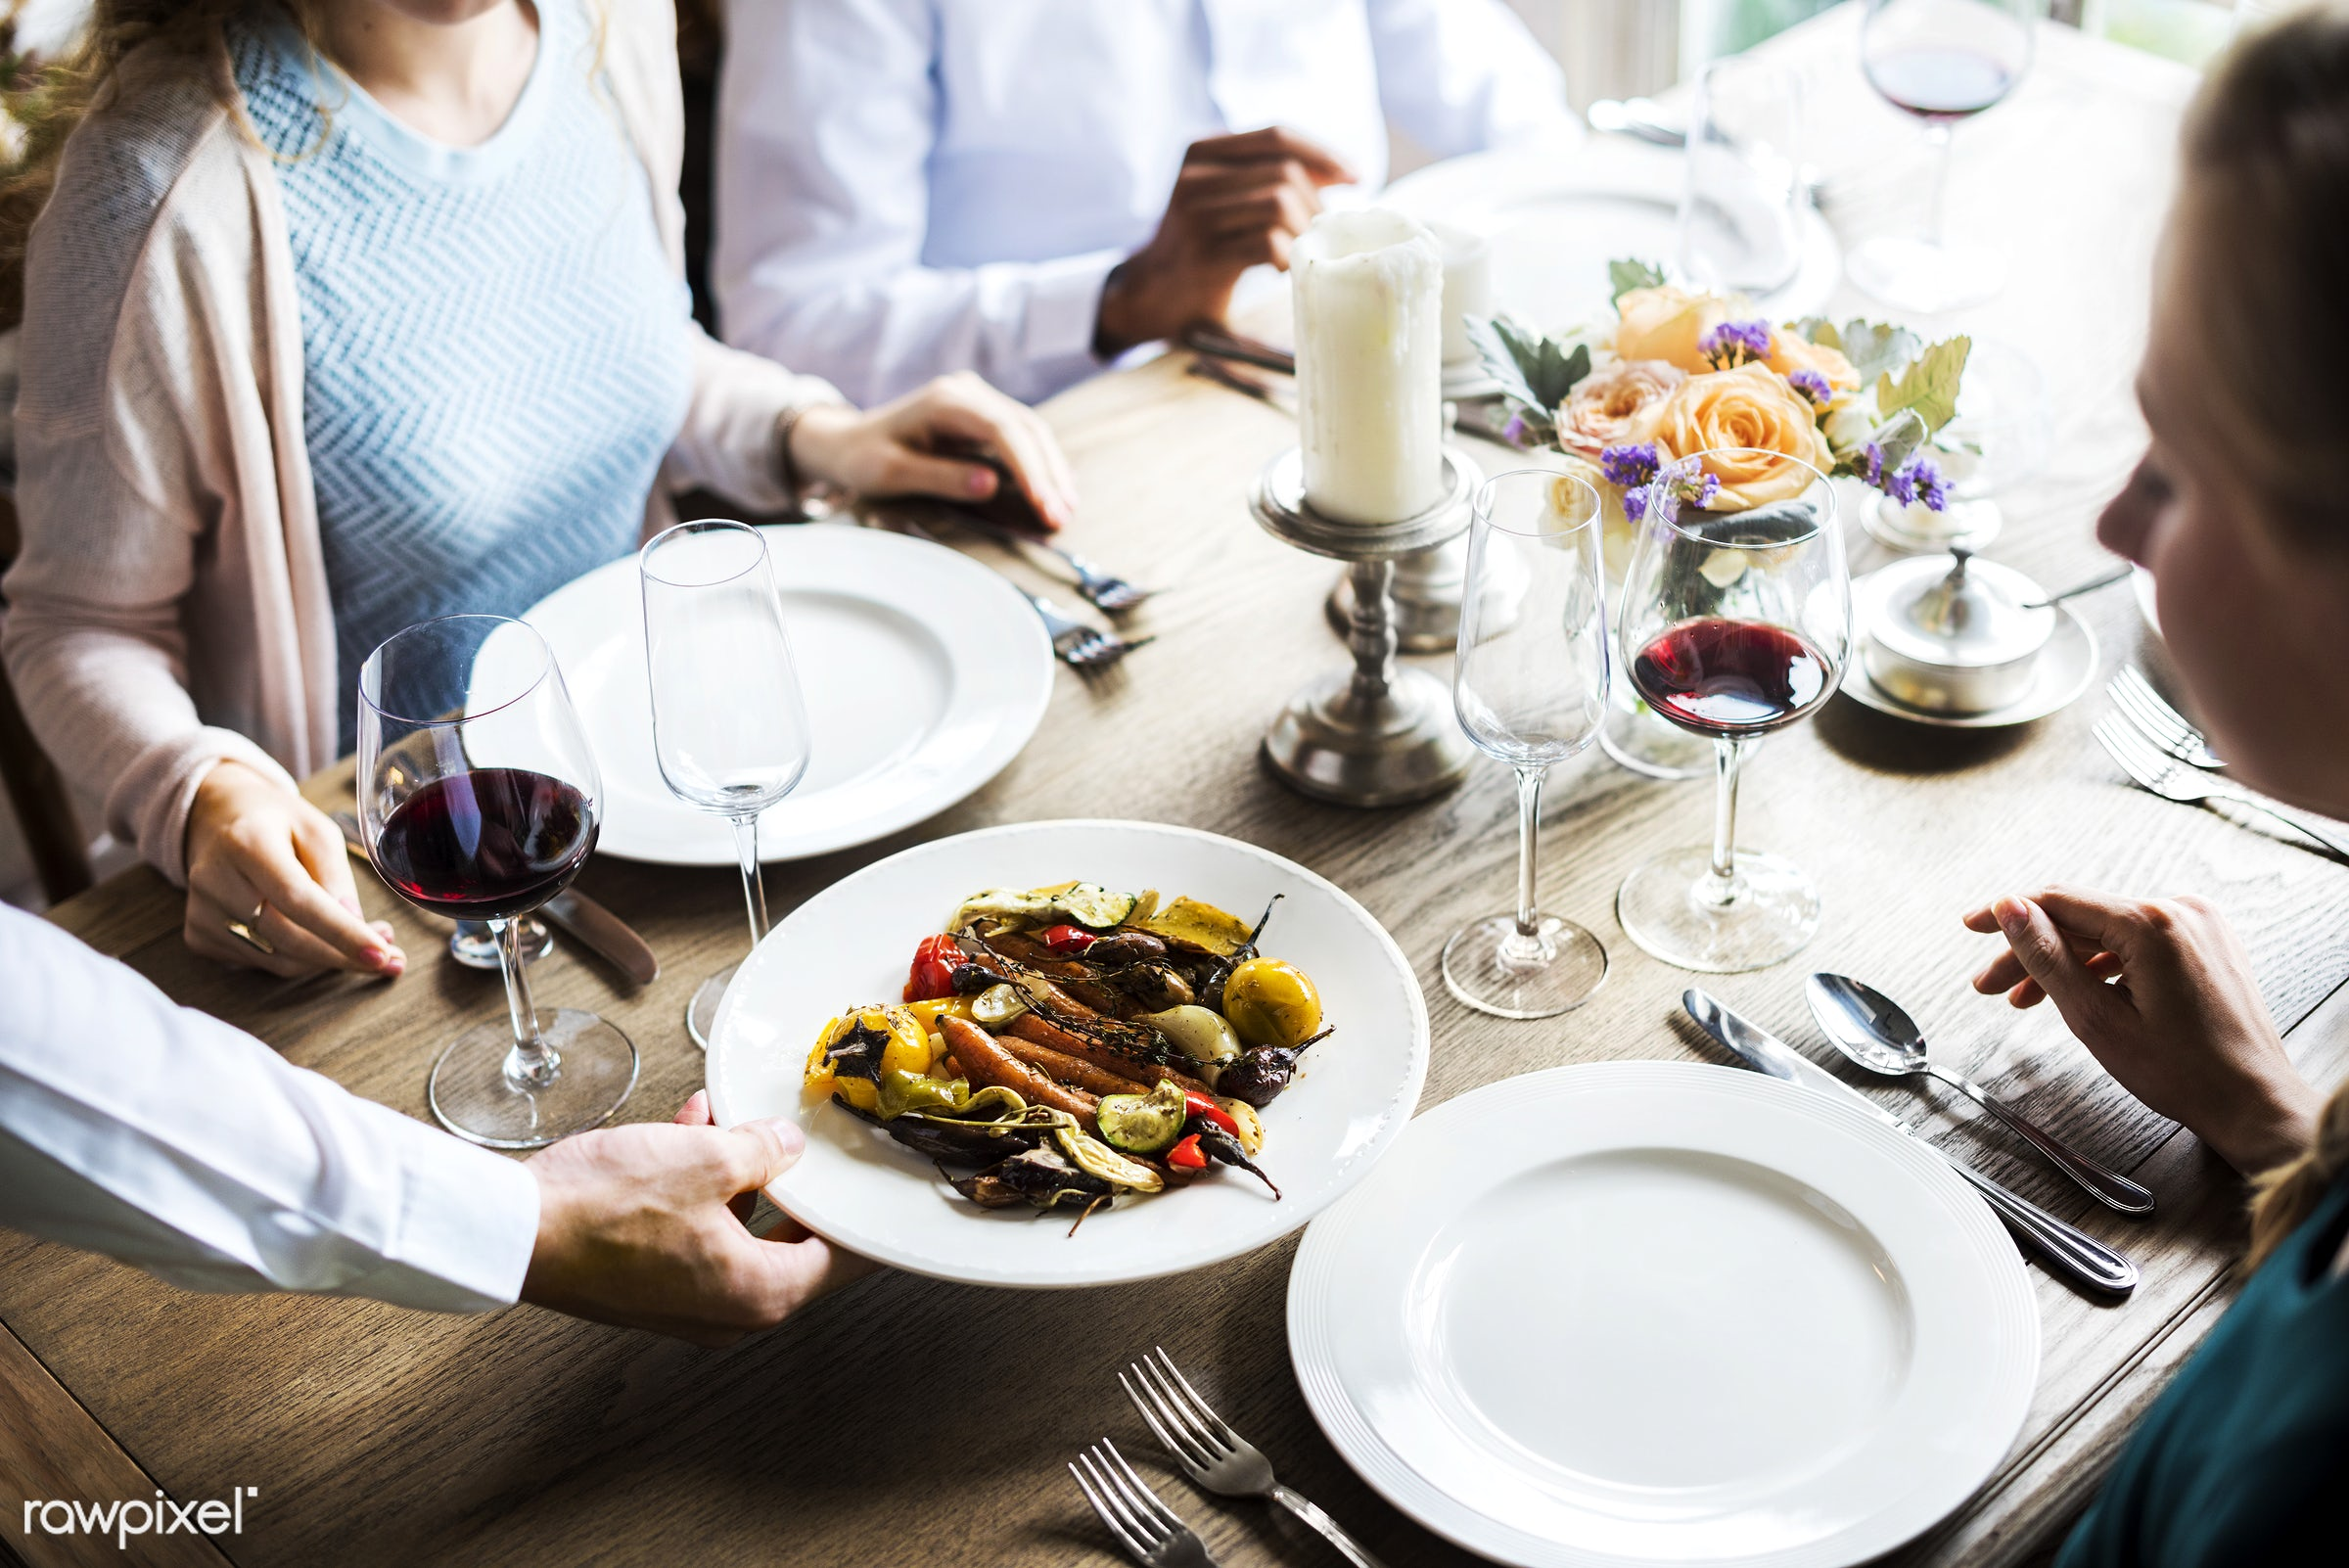 expression, person, cuisine, people, dished, together, caucasian, friends, woman, gather, candles, drink, friendship, lunch...